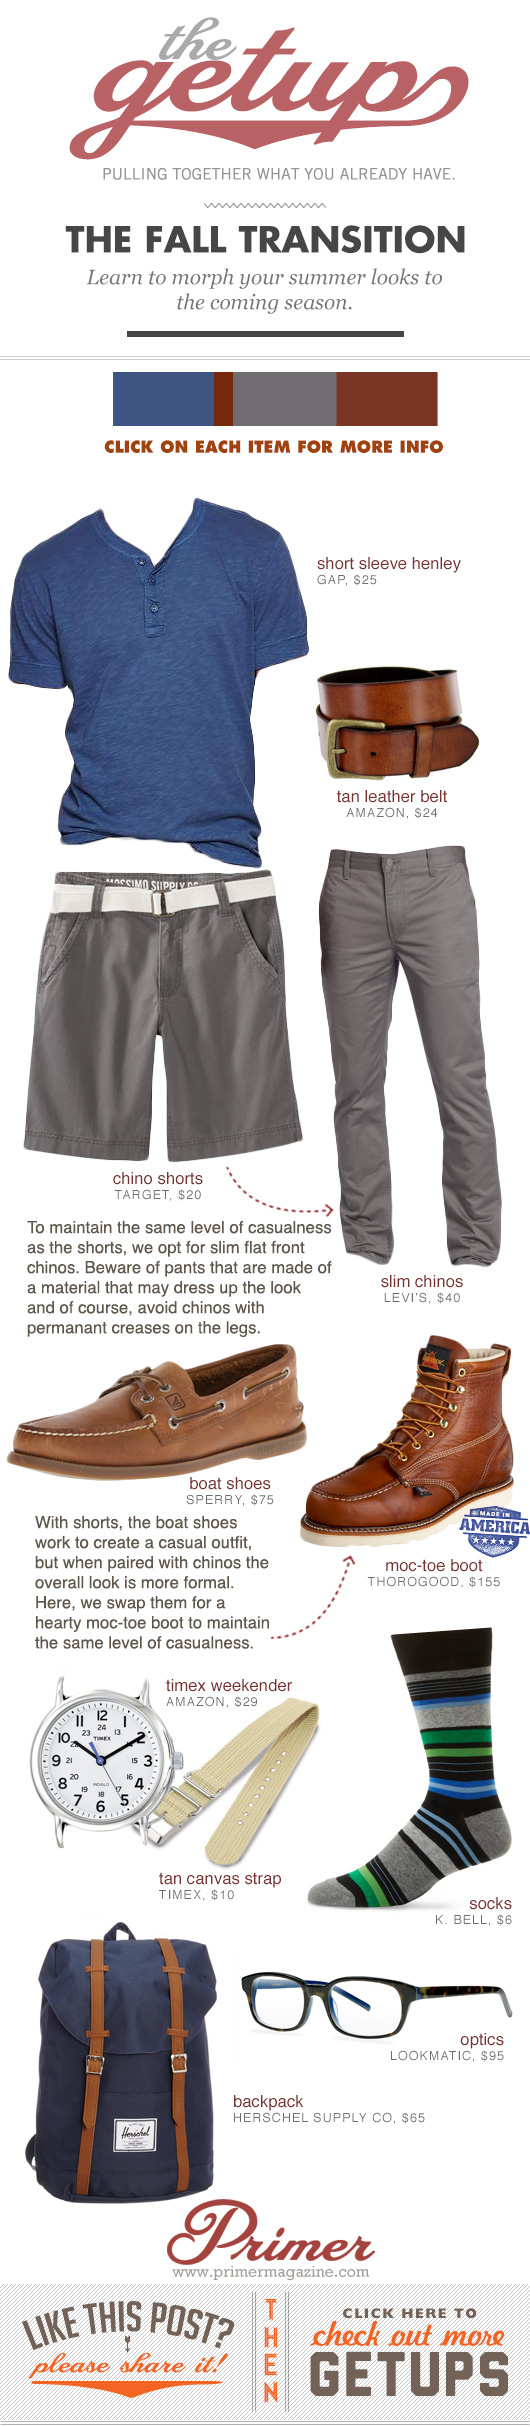 Fall Transition Getup - blue henley, gray shorts or pants, boat shoes or boots